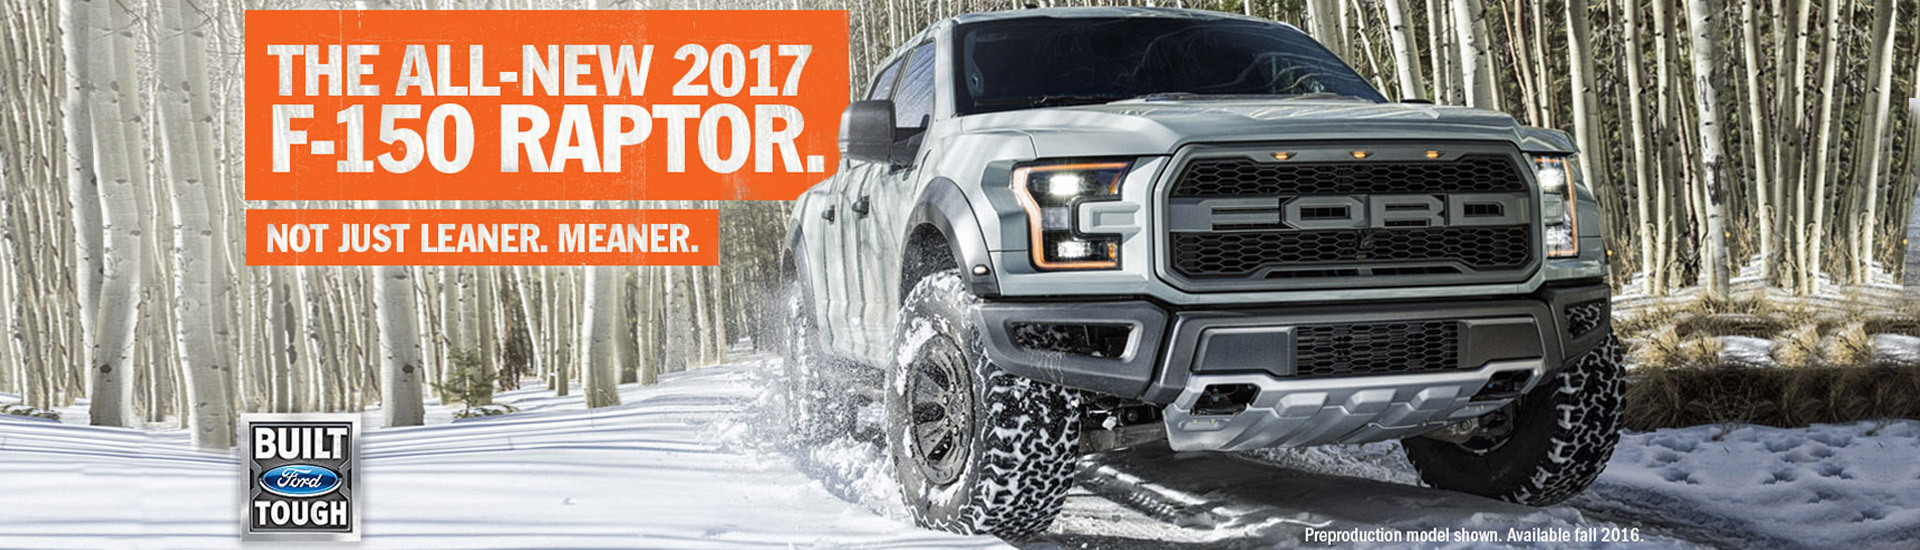 The All-New 2017 F-150 Raptor